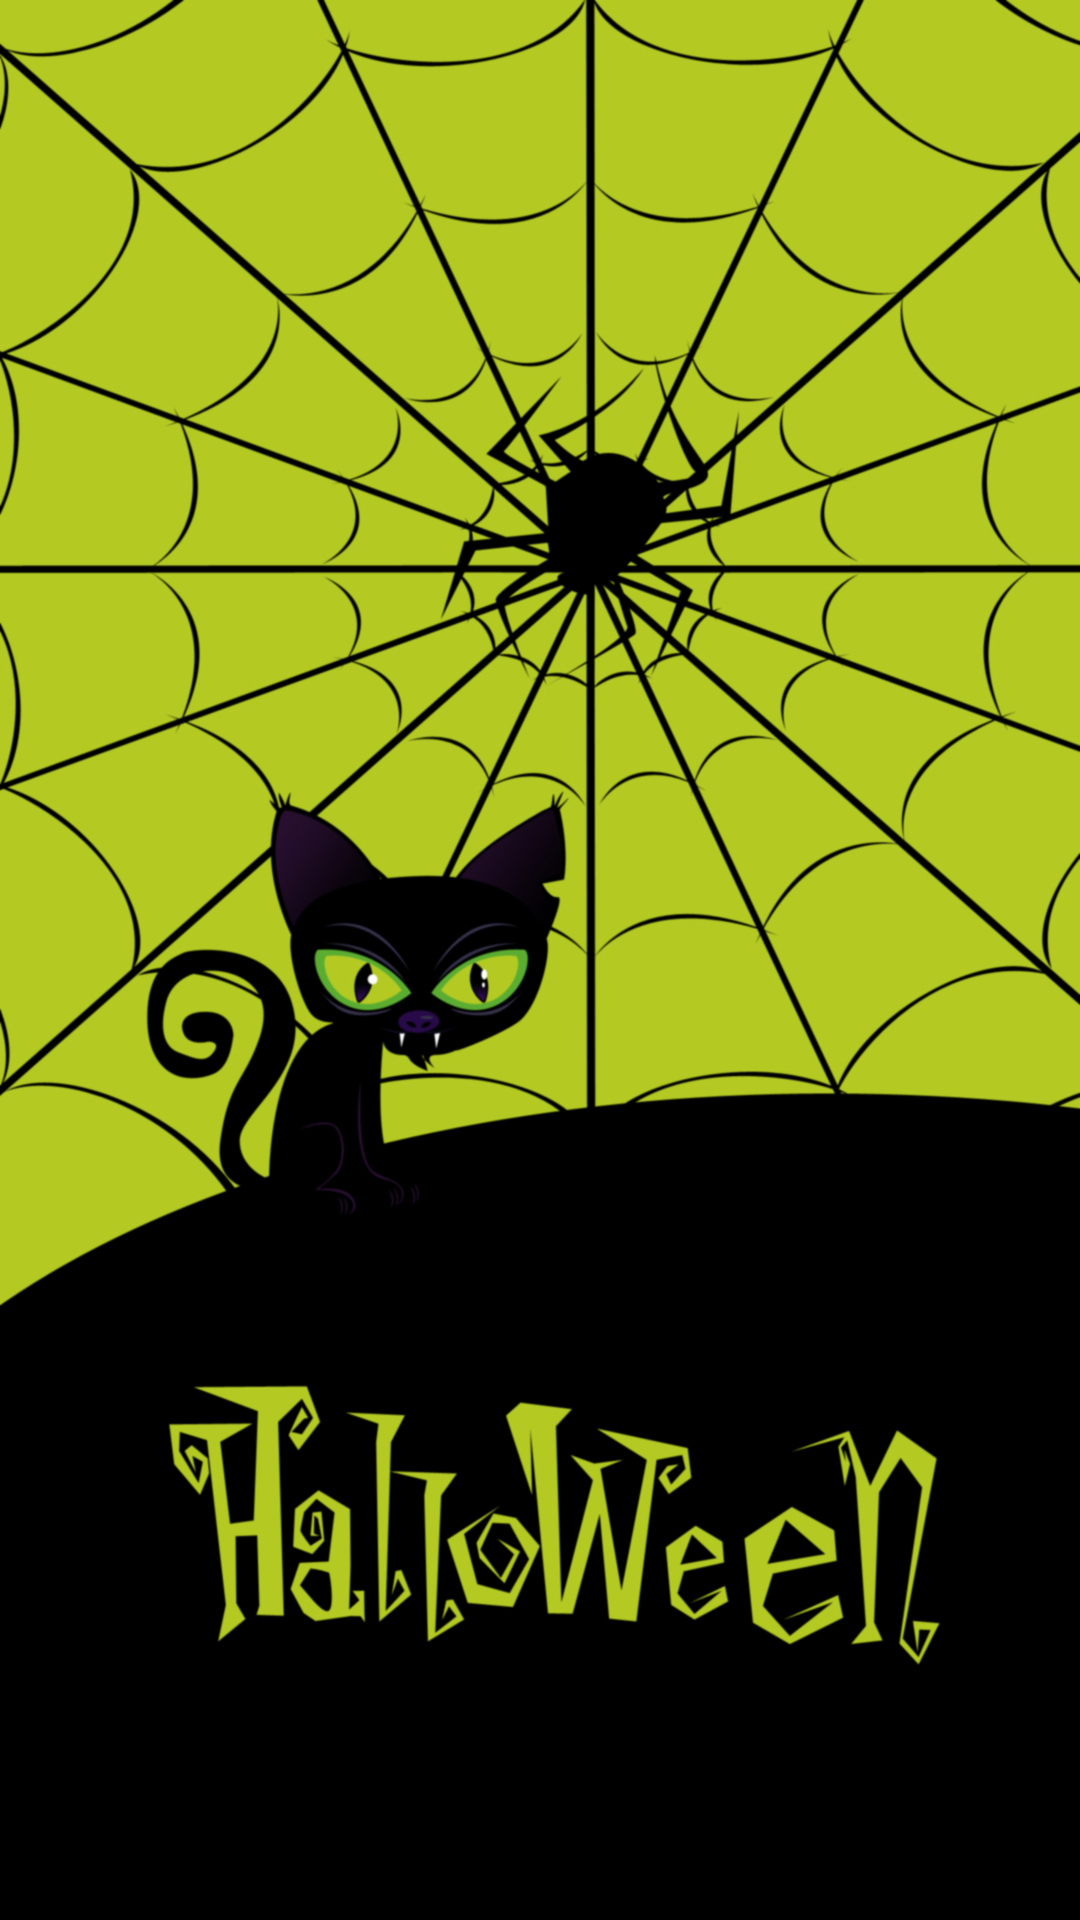 Halloween wallpapers iphone y android fondos de pantalla for Fondos de pantalla para android gratis